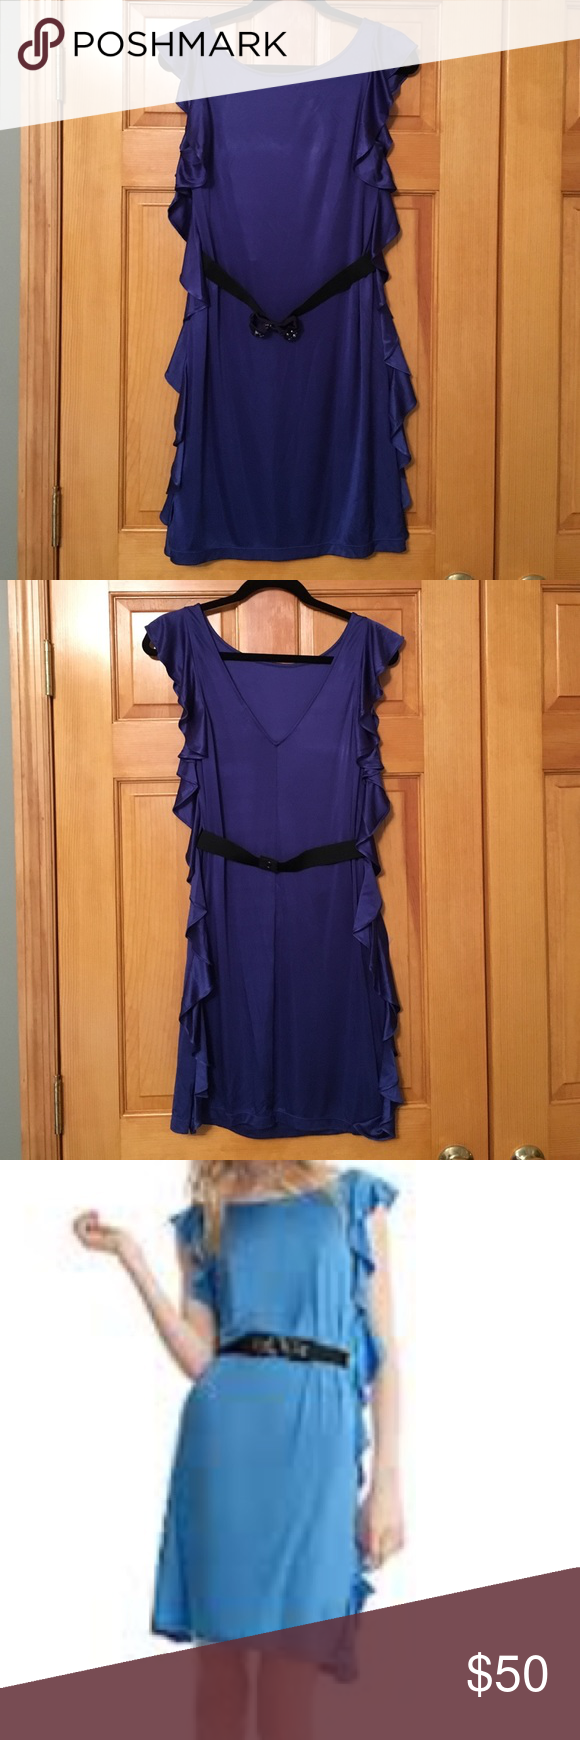 BCBG Bodycon Ruffle Side Blue Dress Same dress as 3rd and 4th picture, but darker blue.  Dress comes with elastic belt with embellished bow.  Really pretty slinky fabric!! BCBG Dresses Mini